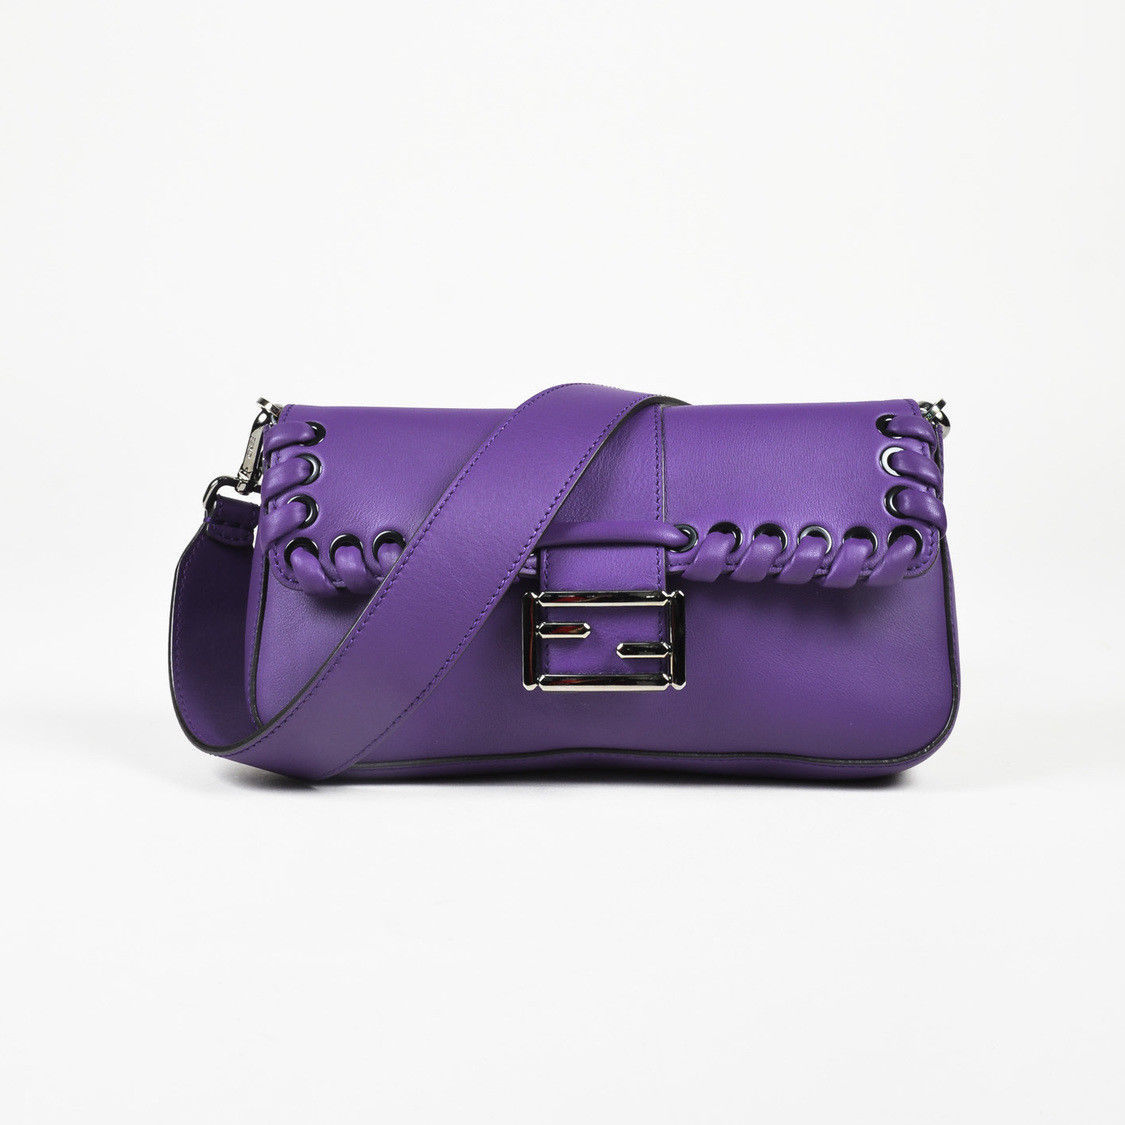 fb40bbd3dde1 Fendi Purple Leather Whipstitch Flap and 50 similar items. S l1600